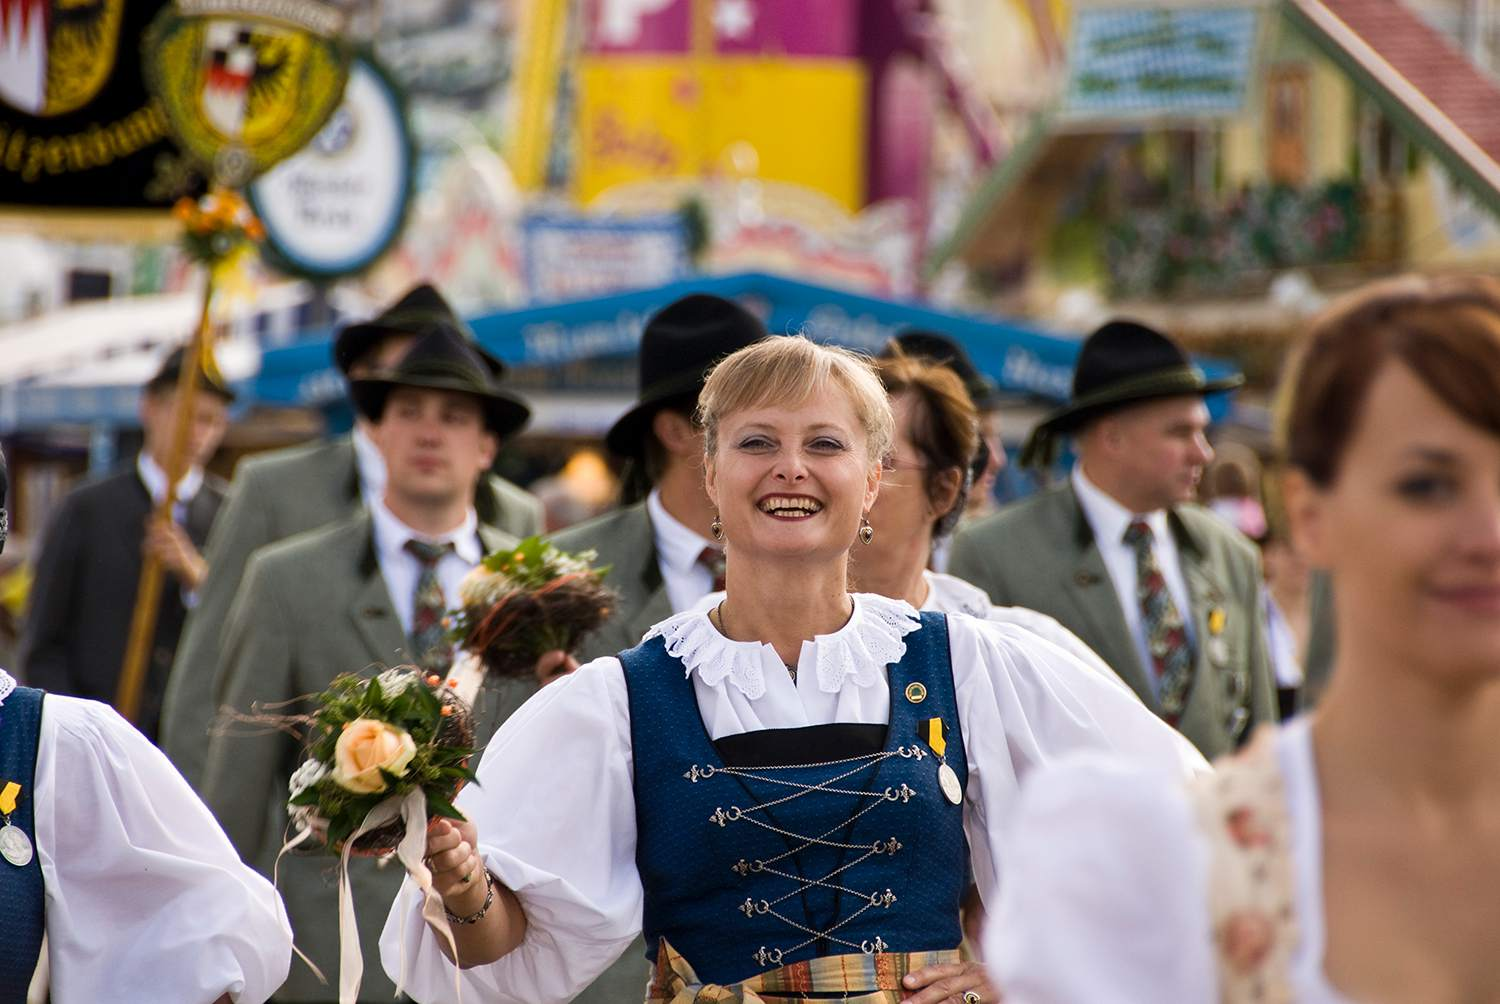 Girls in traditional Bavarian dress marching in Oktoberfest parade.